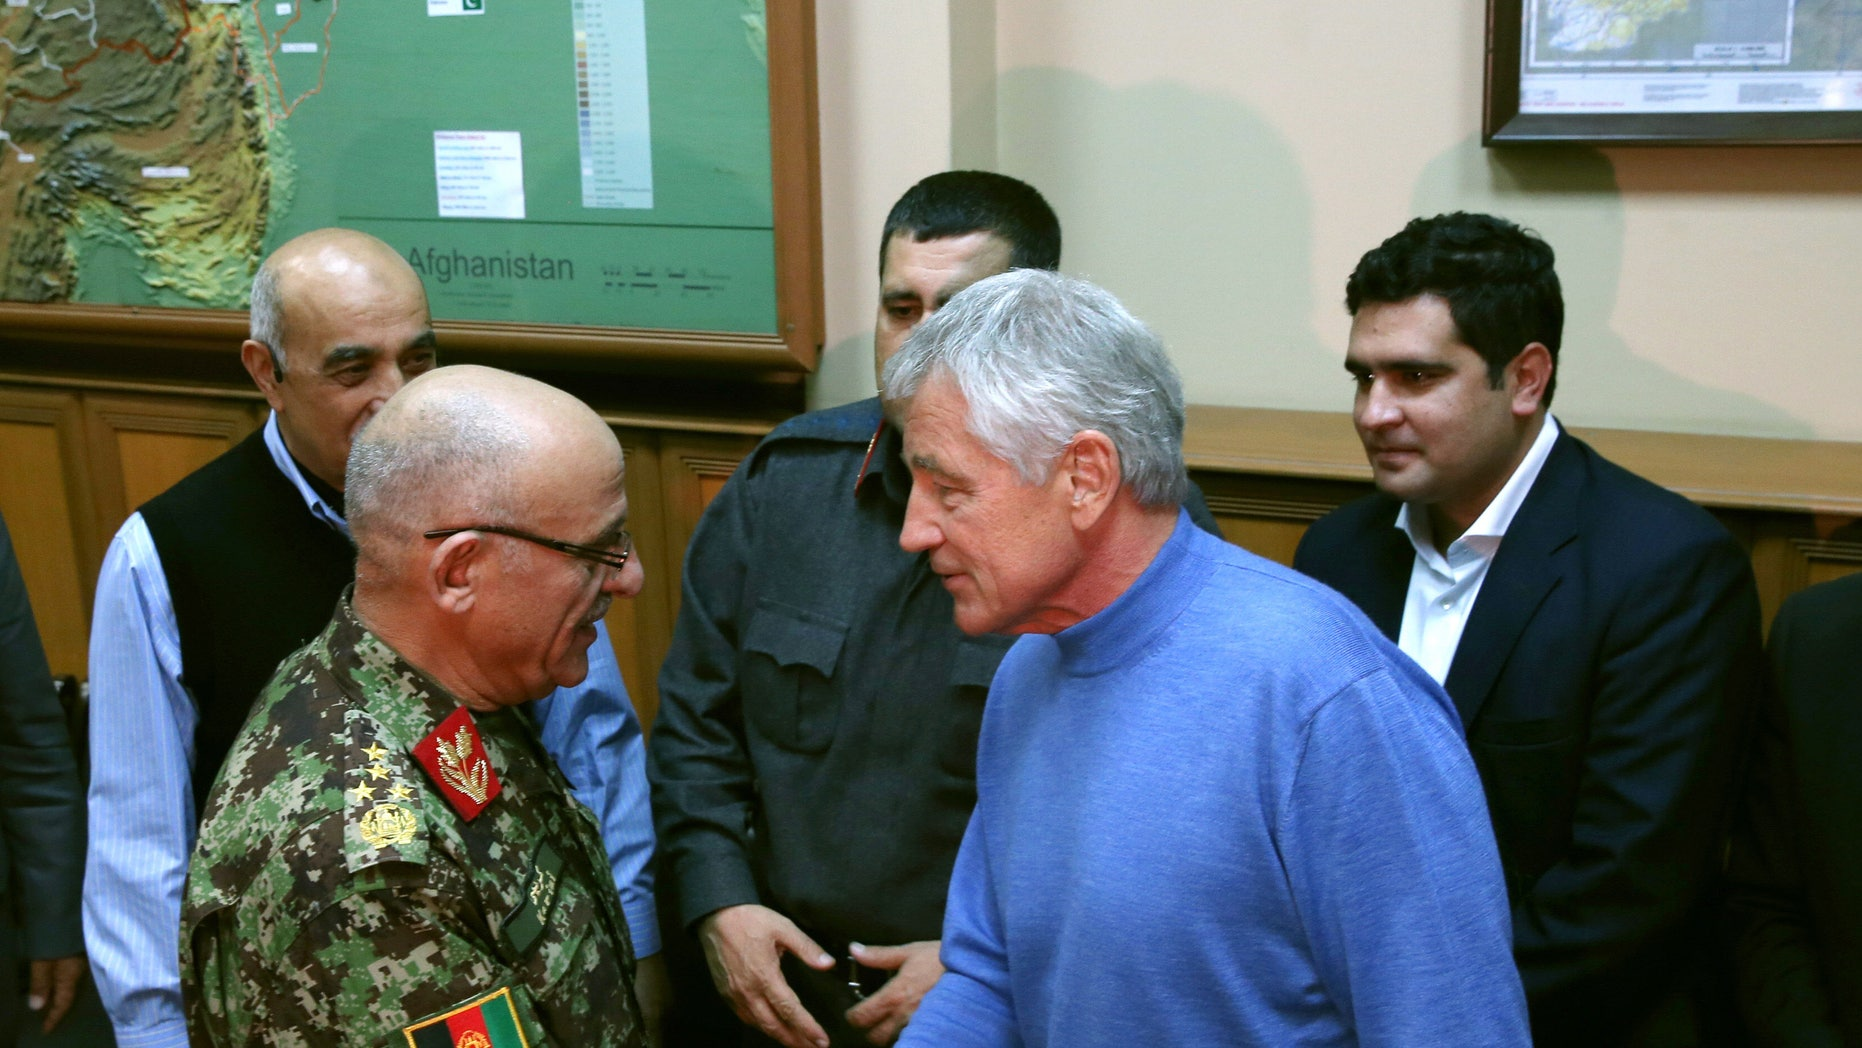 U.S. Secretary of Defense Chuck Hagel, right, shakes hands with Afghan Gen. Sher Mohammad Karimi, left, during a meeting at the International Security Assistance Force Headquarters (ISAF) on Saturday, Dec. 7, 2013 in Kabul, Afghanistan. Secretary Hagel made a stop in Afghanistan during his six-day trip to the Middle East.  (AP Photo/Mark Wilson, Pool)